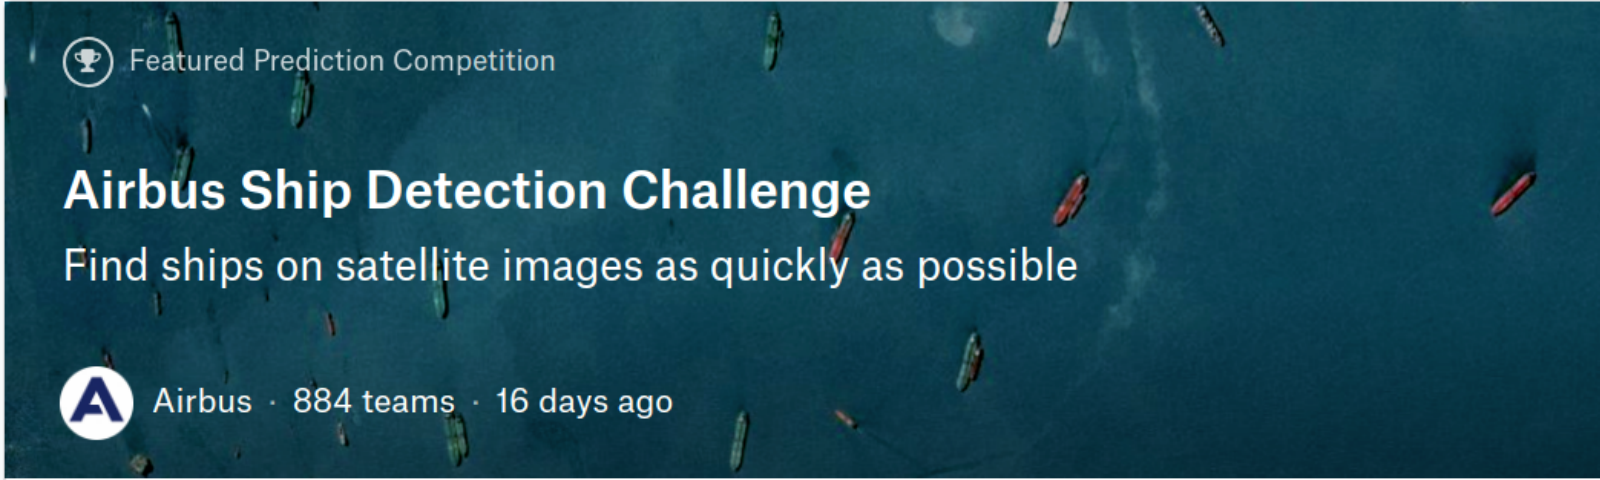 Lessons Learned from Kaggle's Airbus Challenge  - Towards Data Science